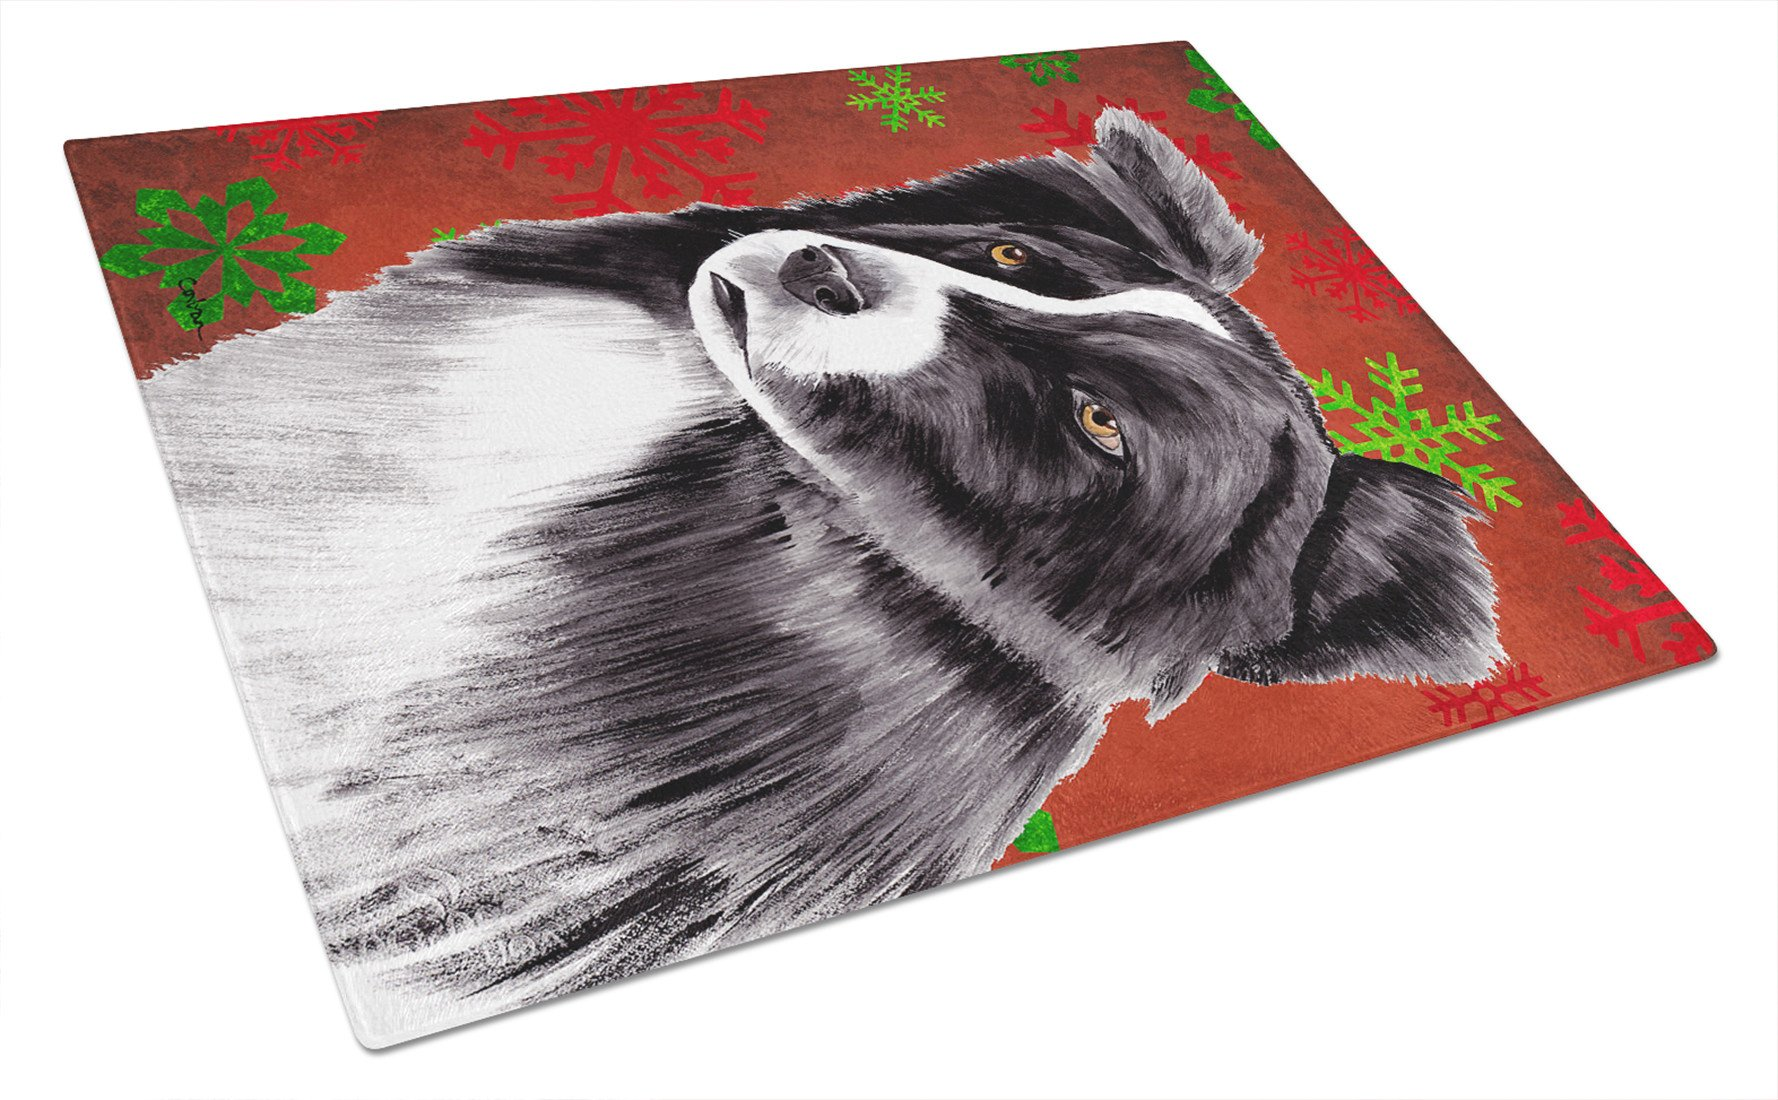 Border Collie Red and Green Snowflakes Christmas Glass Cutting Board Large by Caroline's Treasures